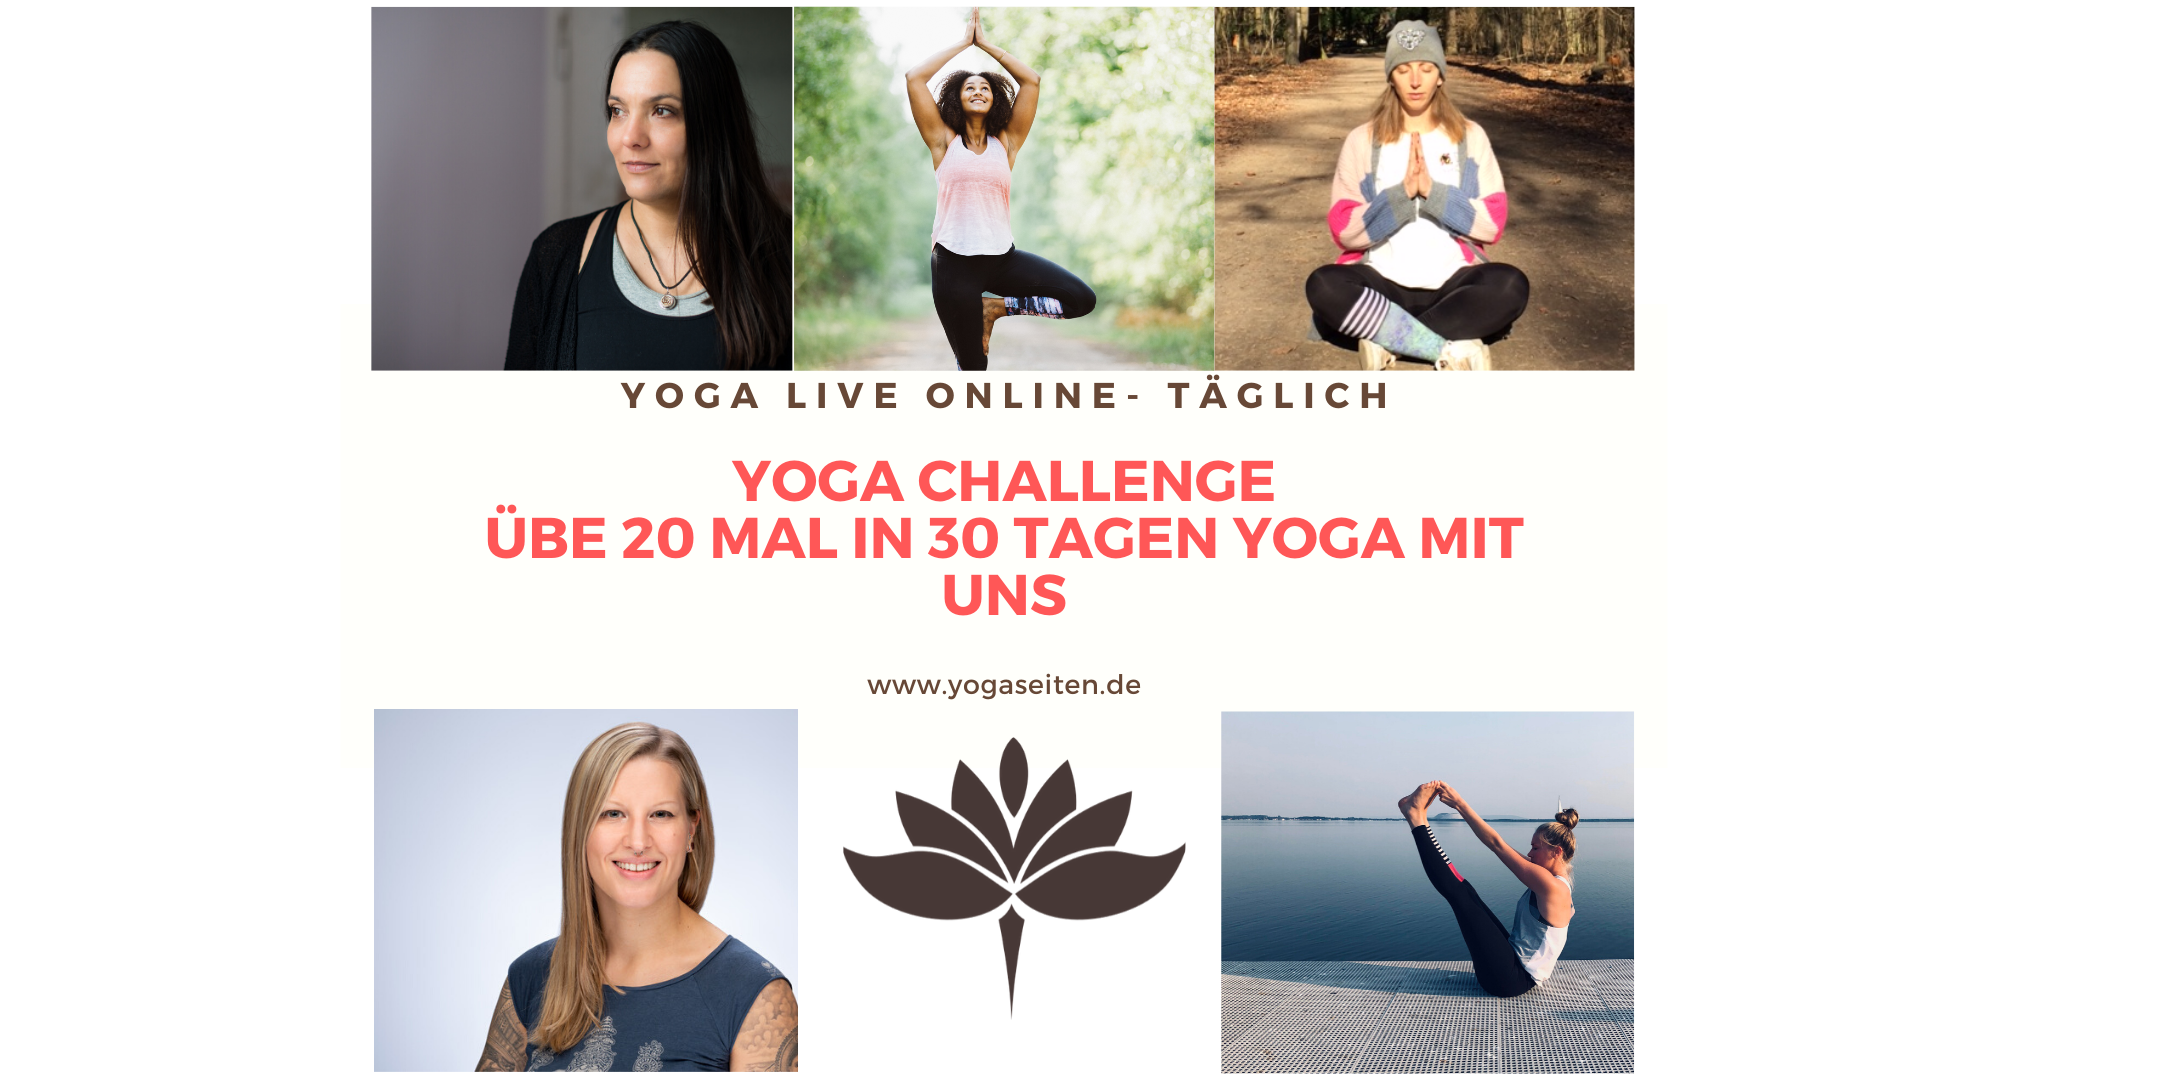 Yoga challenge - 20 mal Yoga in 30 Tagen